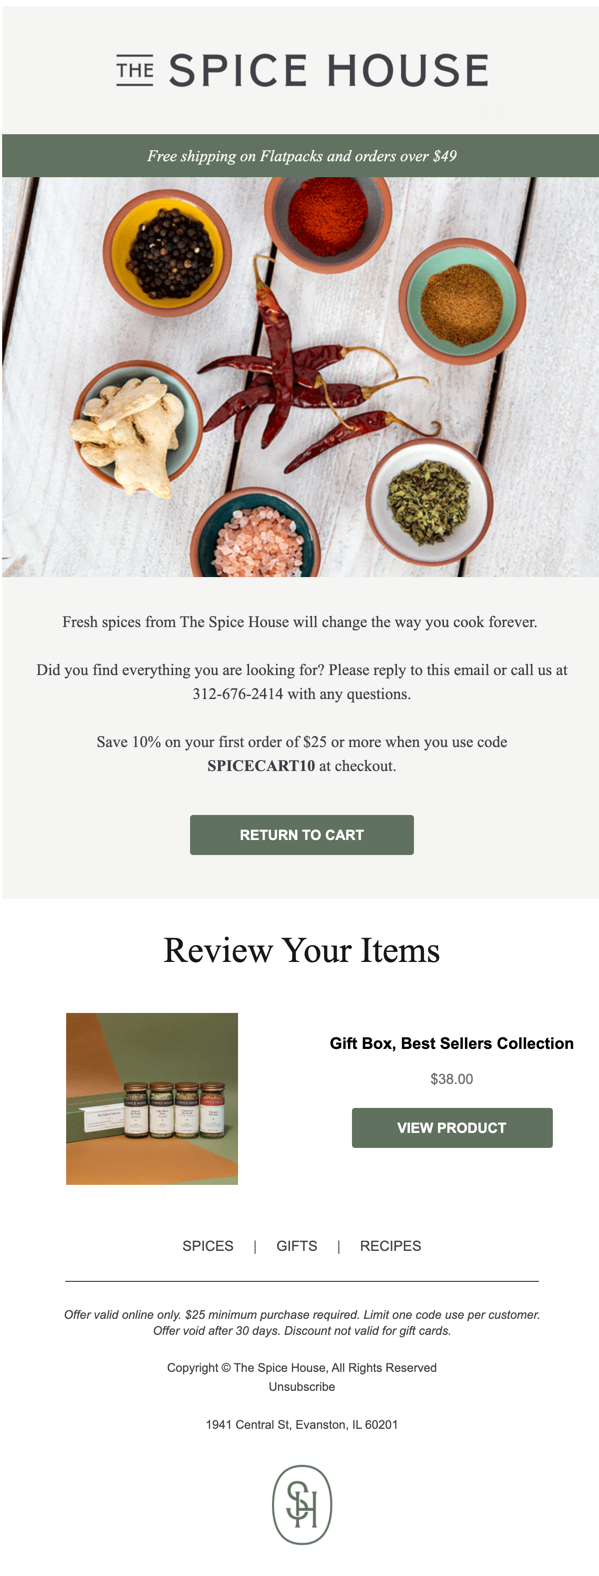 The Spice House cart abandonment email.